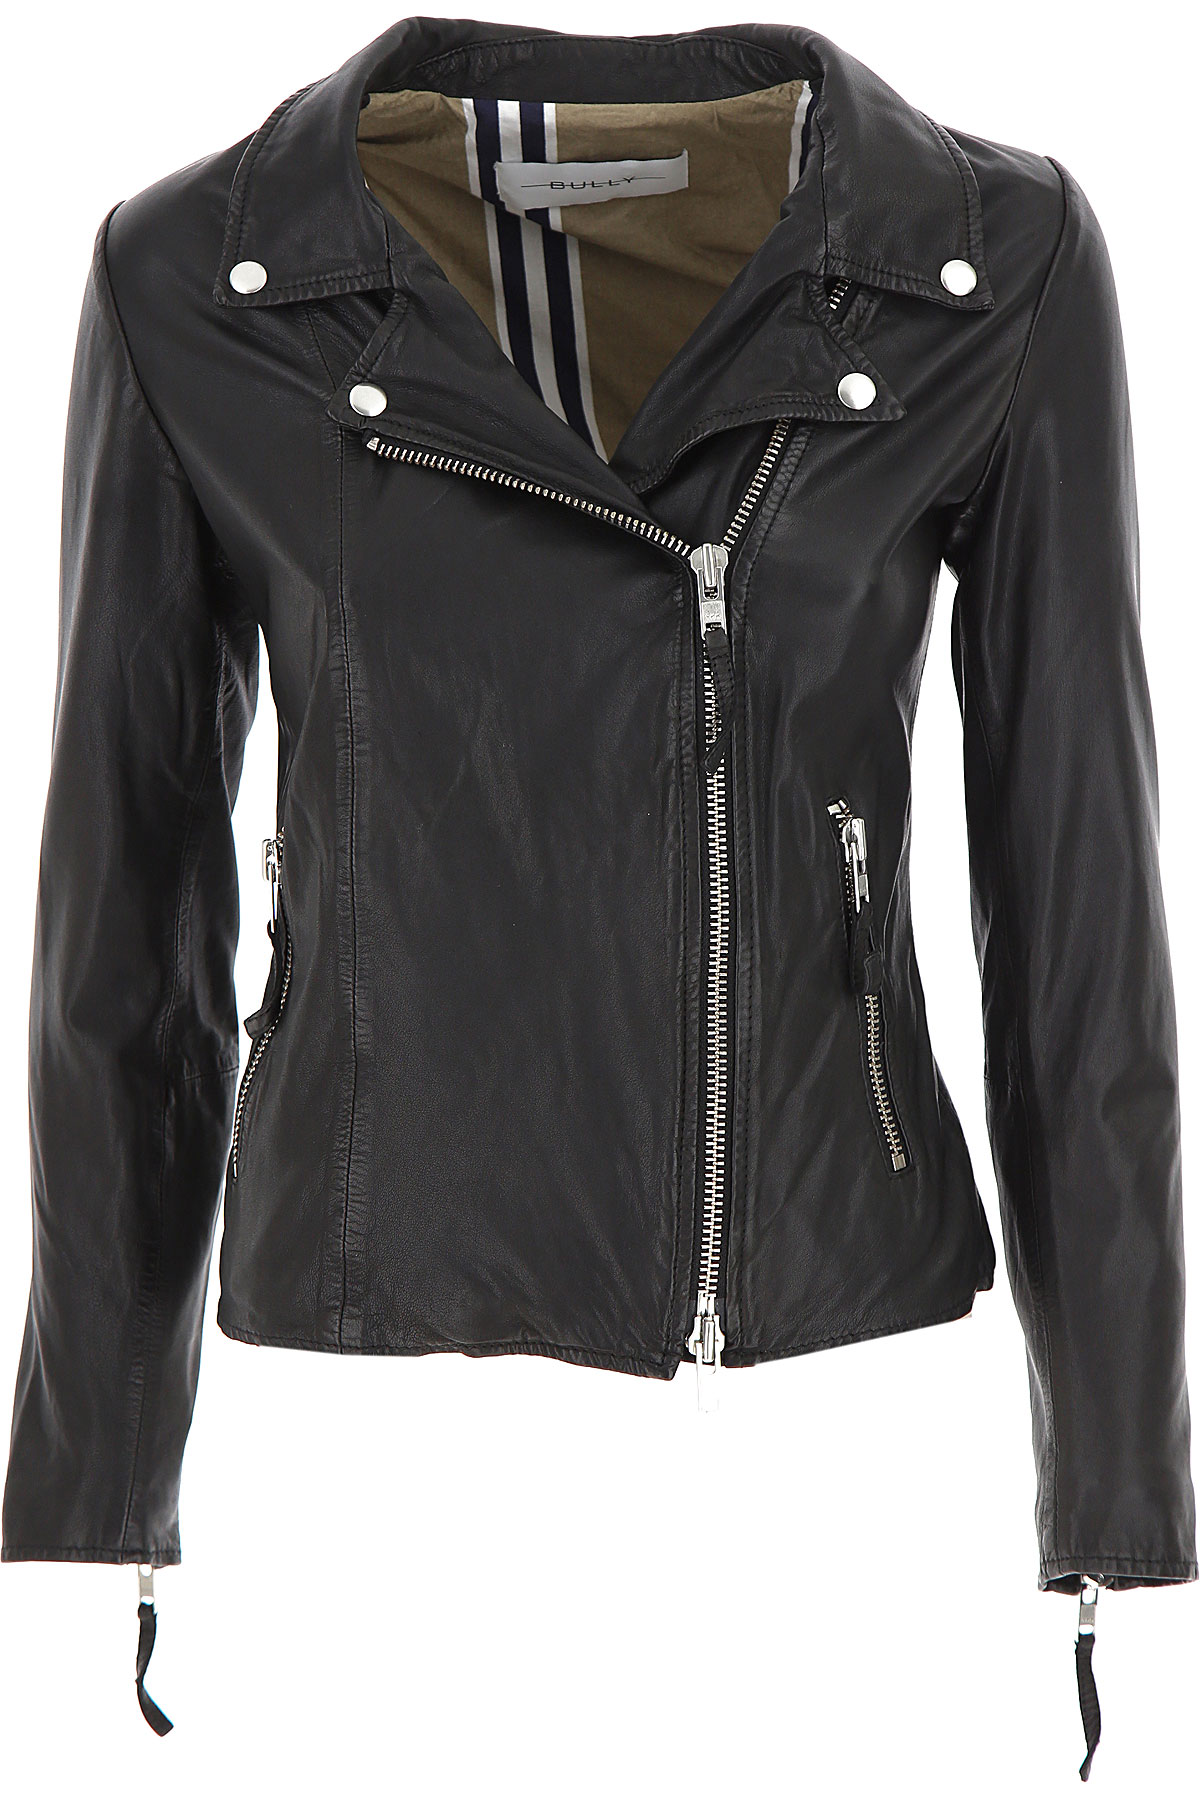 Bully Leather Jacket for Women On Sale, Black, Leather, 2019, 10 12 6 8